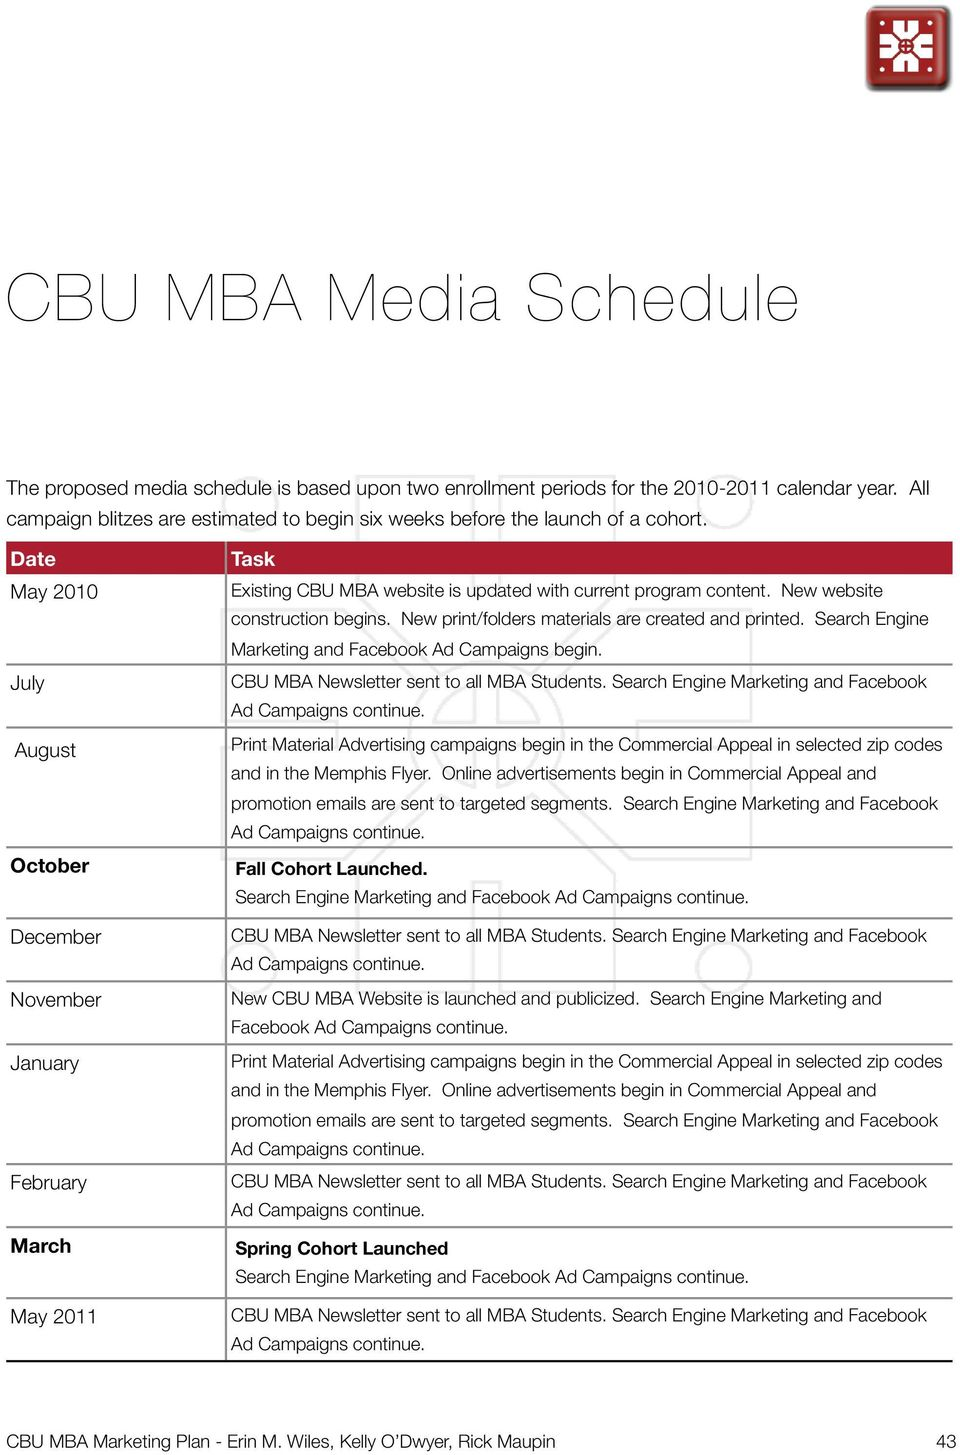 Date May 2010 July August October December November January February March May 2011 Task Existing CBU MBA website is updated with current program content. New website construction begins.